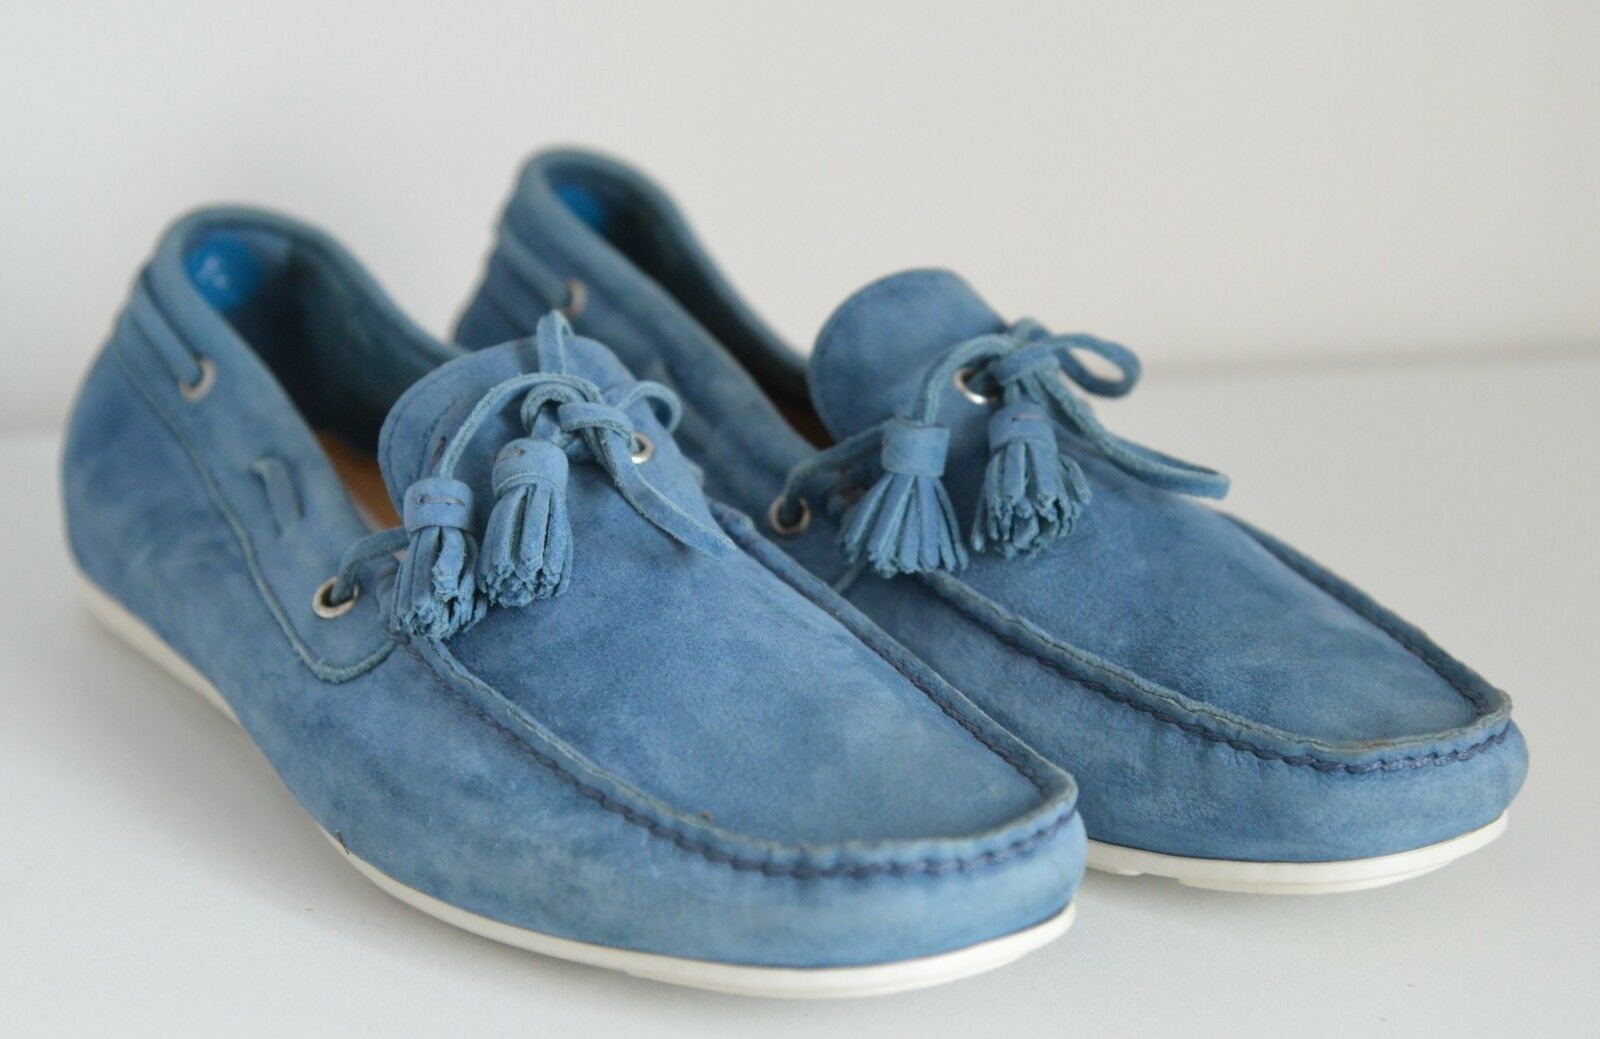 New Santoni Suede Mens Boat shoes Loafers Slip On Moccasin Sneakers bluee UK 8